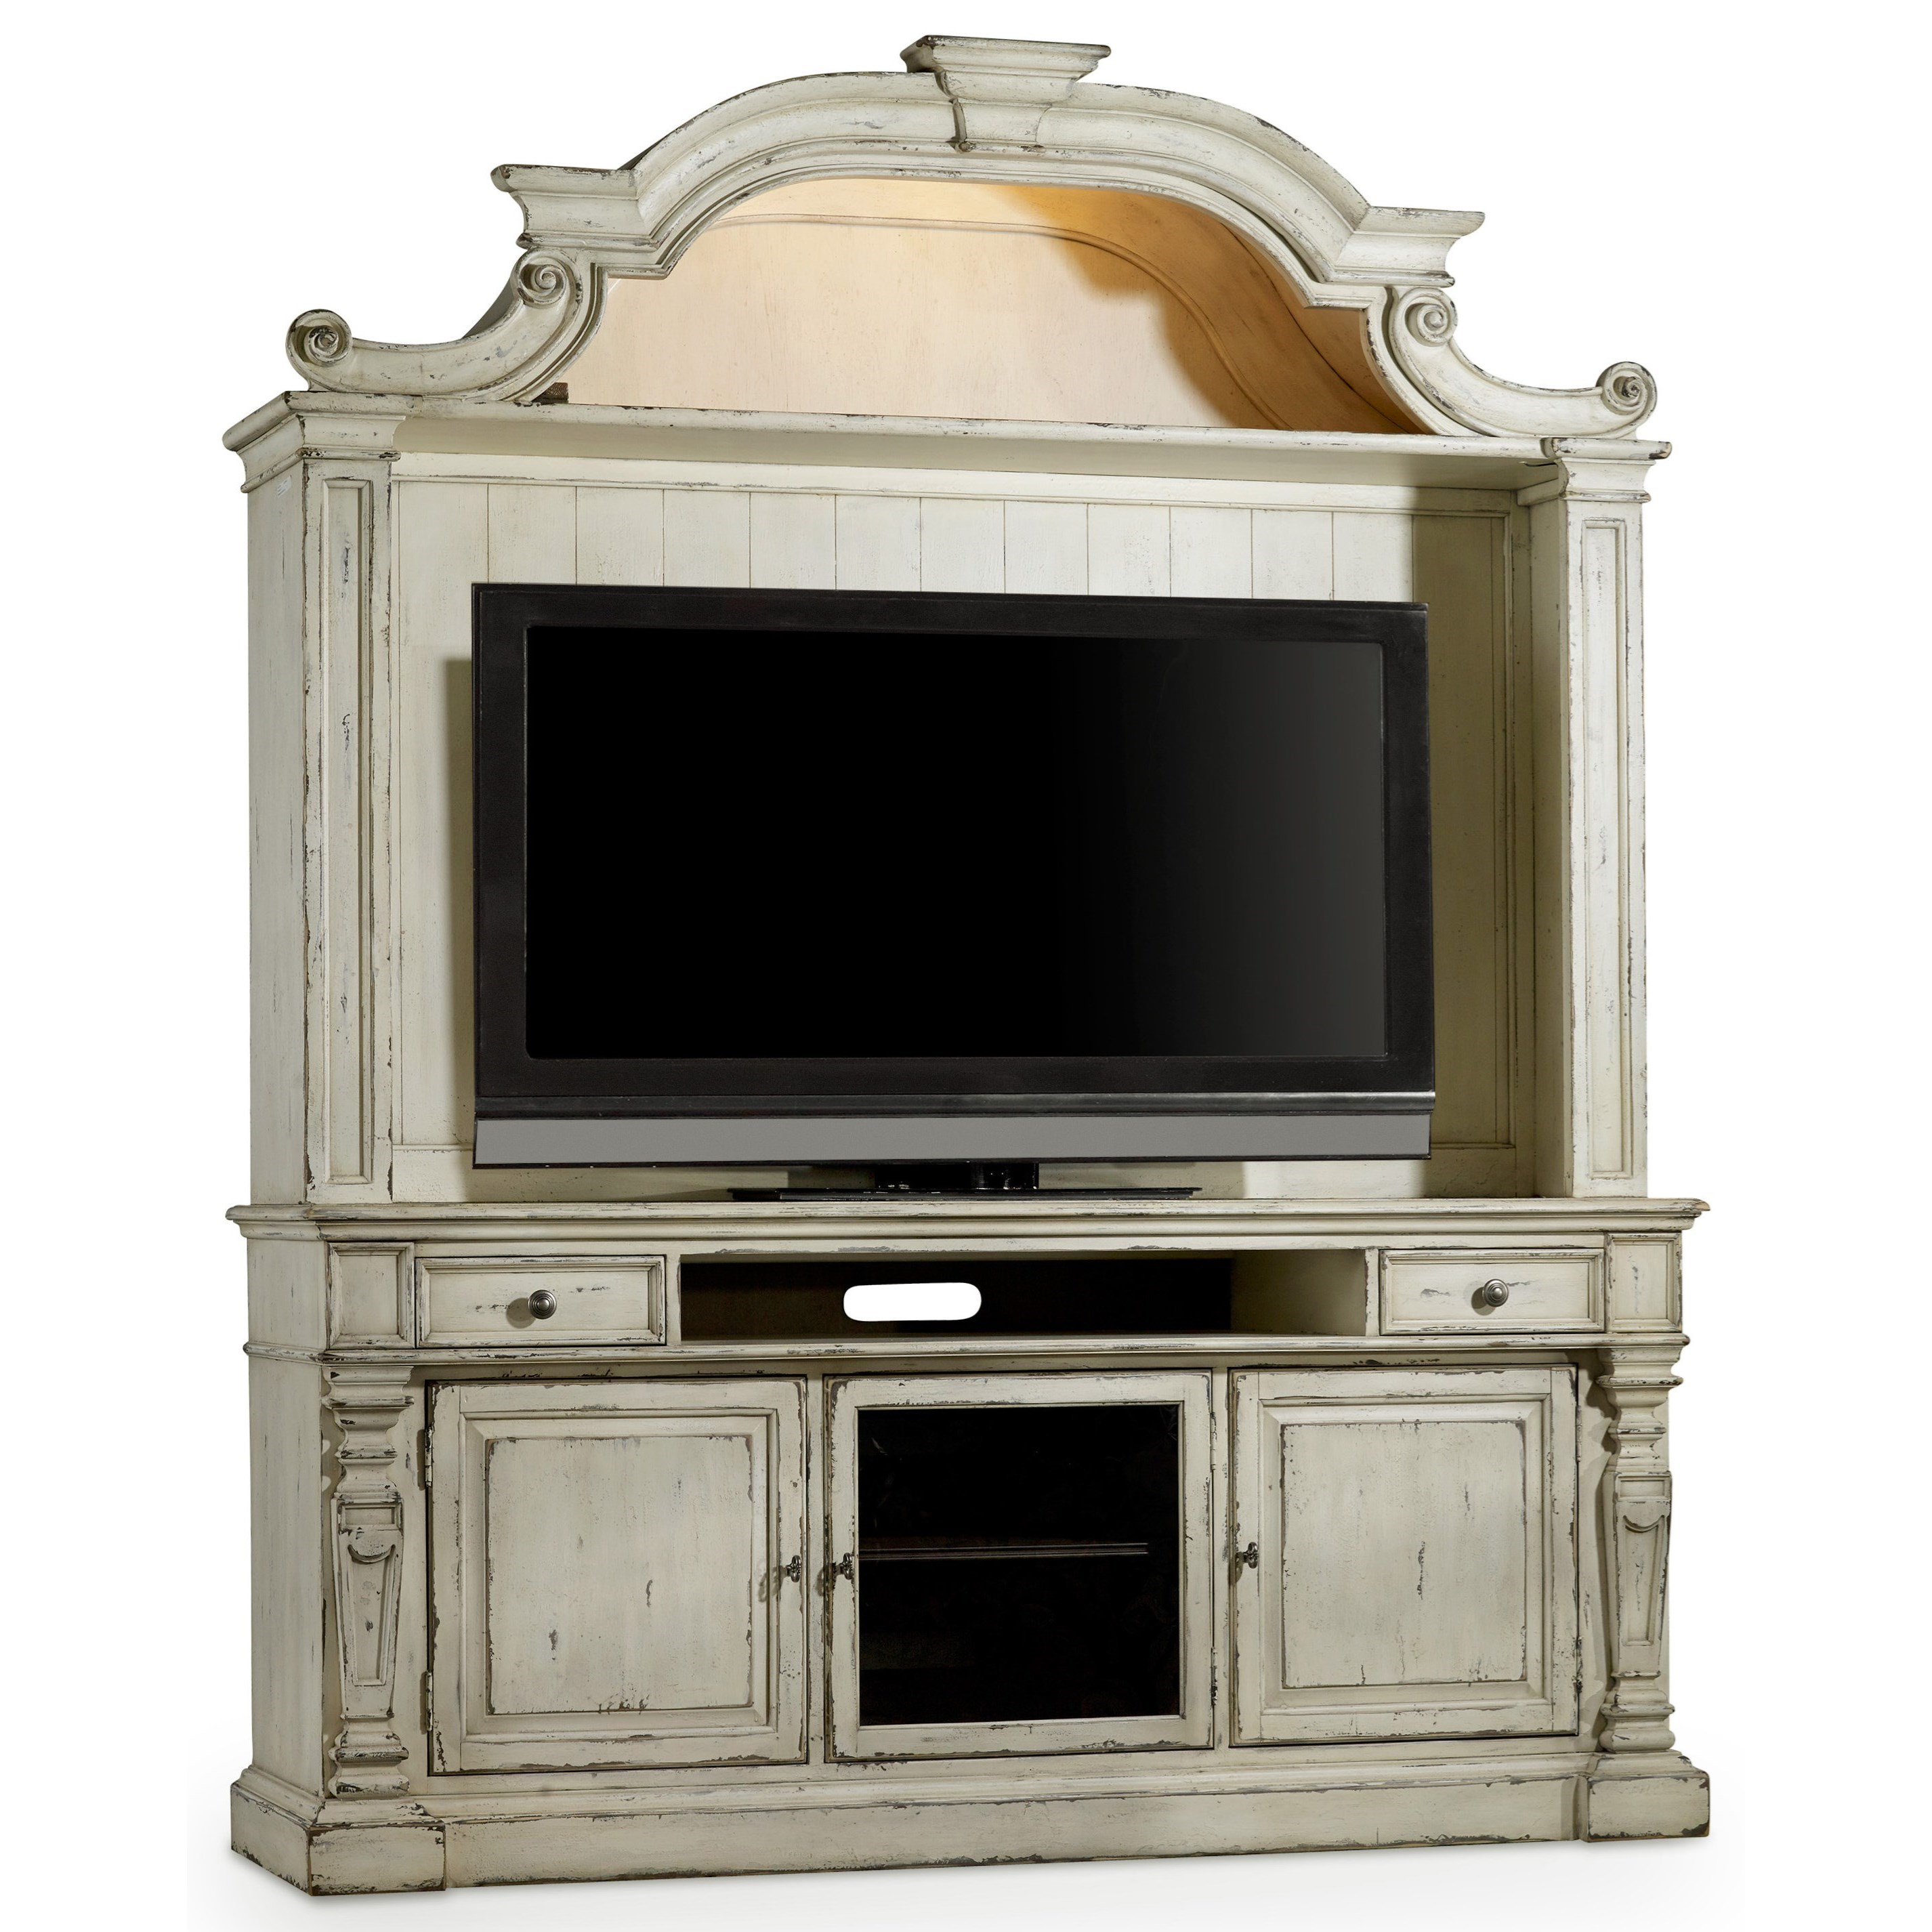 Hooker Furniture Sanctuary3 Two Piece Entertainment Group - Item Number: 5403-55202